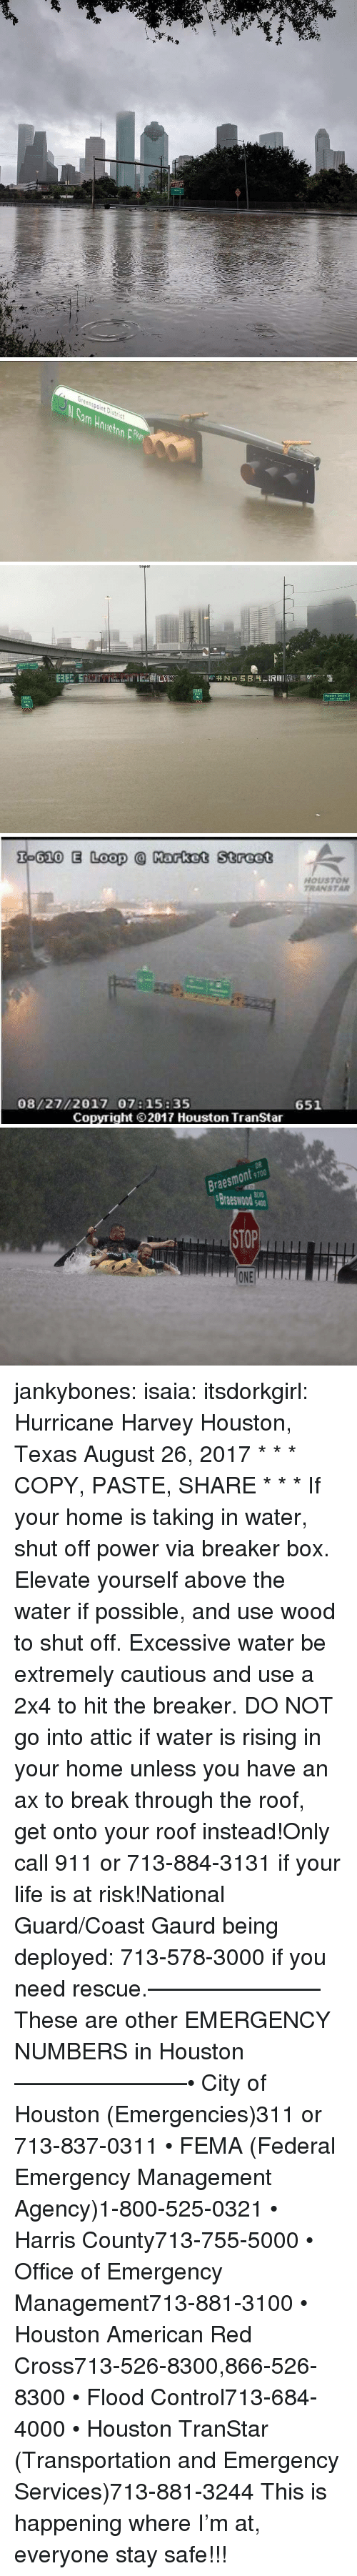 fema: Greenspoint District   Theater District   620 E Loop Market Street  HOUSTON  TRANSTAR  08/27/2017 07:15:35  651  Copyright ⓒ 2017 Houston TranStar   Braesmont 9700  Braeswod  STOP  ONE jankybones: isaia:  itsdorkgirl:  Hurricane Harvey Houston, Texas  August 26, 2017  * * * COPY, PASTE, SHARE * * * If your home is taking in water, shut off power via breaker box. Elevate yourself above the water if possible, and use wood to shut off. Excessive water be extremely cautious and use a 2x4 to hit the breaker. DO NOT go into attic if water is rising in your home unless you have an ax to break through the roof, get onto your roof instead!Only call 911 or 713-884-3131 if your life is at risk!National Guard/Coast Gaurd being deployed: 713-578-3000 if you need rescue.———————–These are other EMERGENCY NUMBERS in Houston———————–• City of Houston (Emergencies)311 or 713-837-0311 • FEMA (Federal Emergency Management Agency)1-800-525-0321 • Harris County713-755-5000 • Office of Emergency Management713-881-3100 • Houston American Red Cross713-526-8300,866-526-8300 • Flood Control713-684-4000 • Houston TranStar (Transportation and Emergency Services)713-881-3244   This is happening where I'm at, everyone stay safe!!!